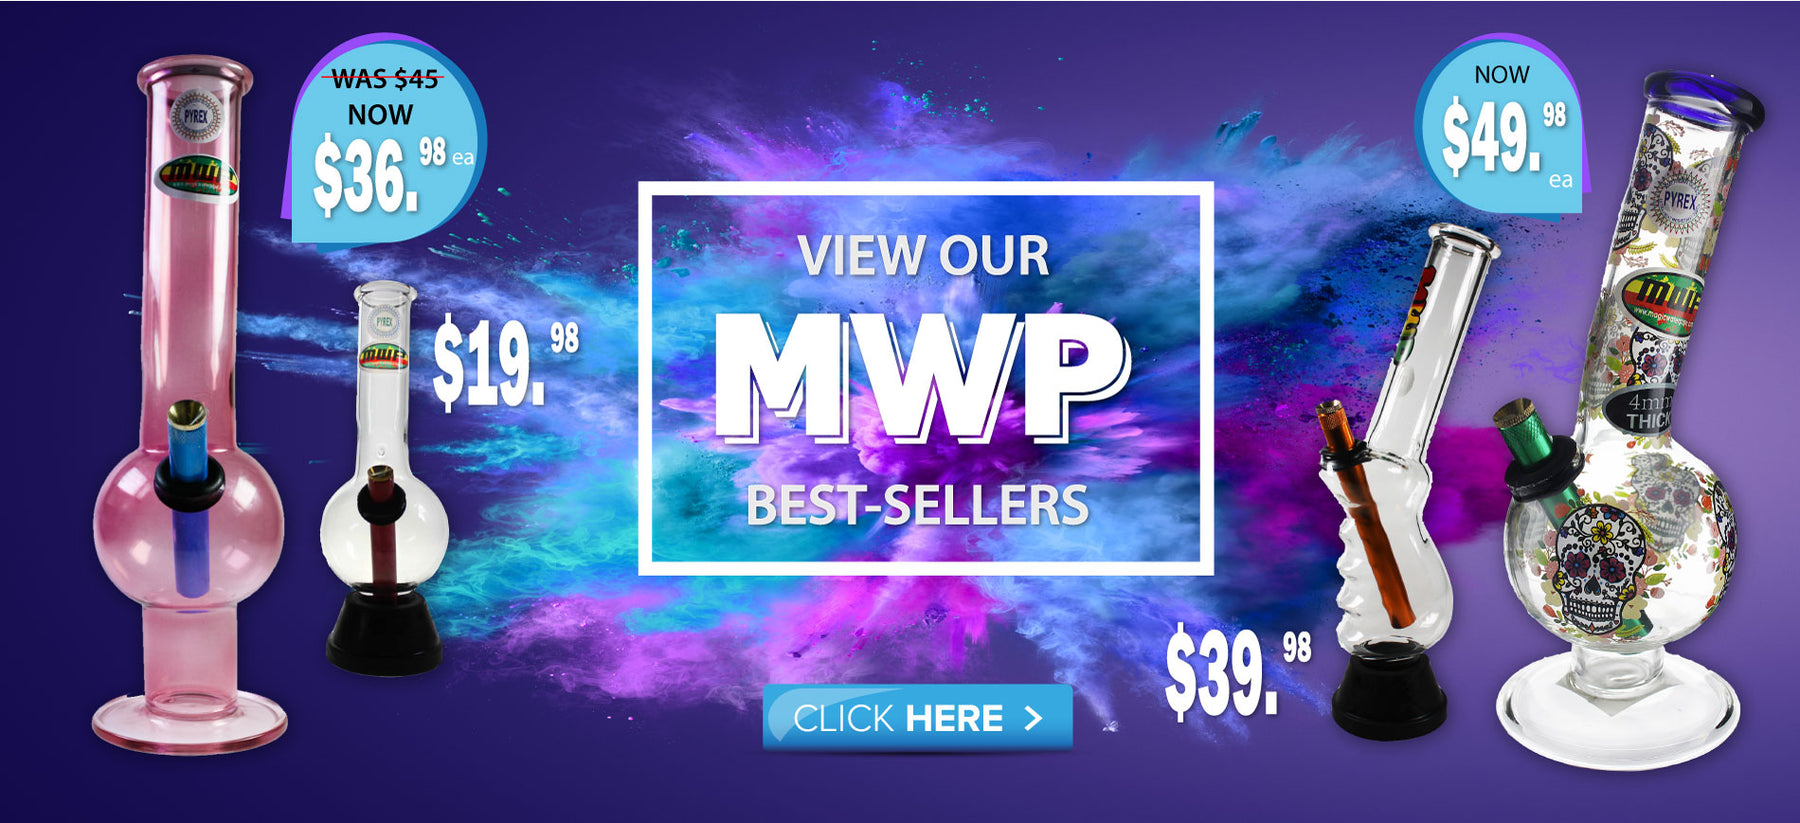 Best-selling MWP bongs online